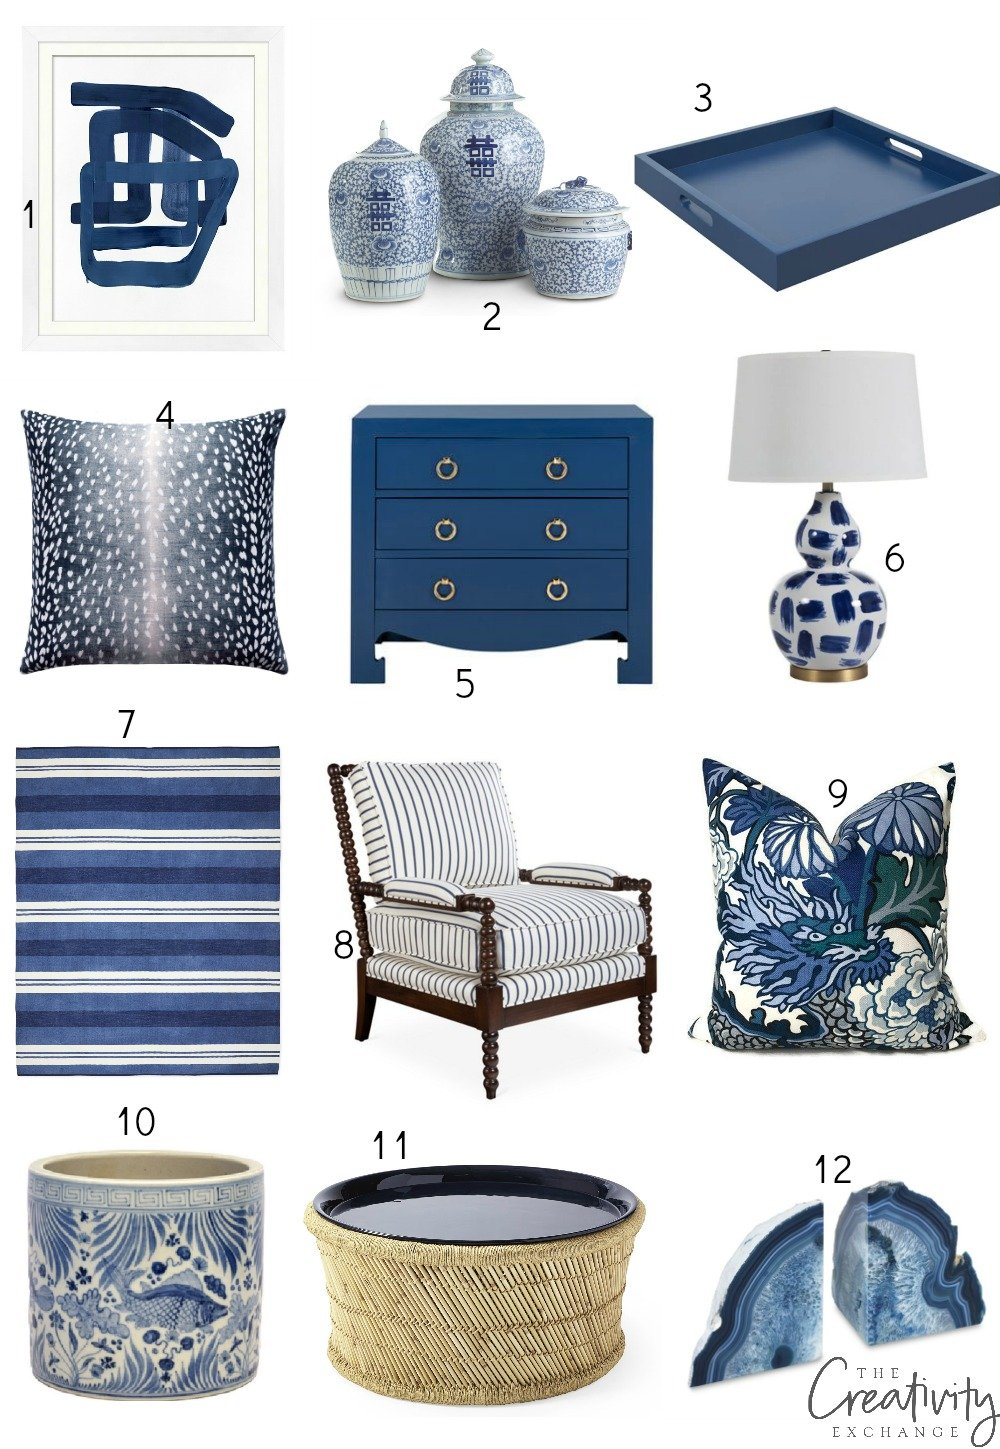 Shades of blue accessories and accents